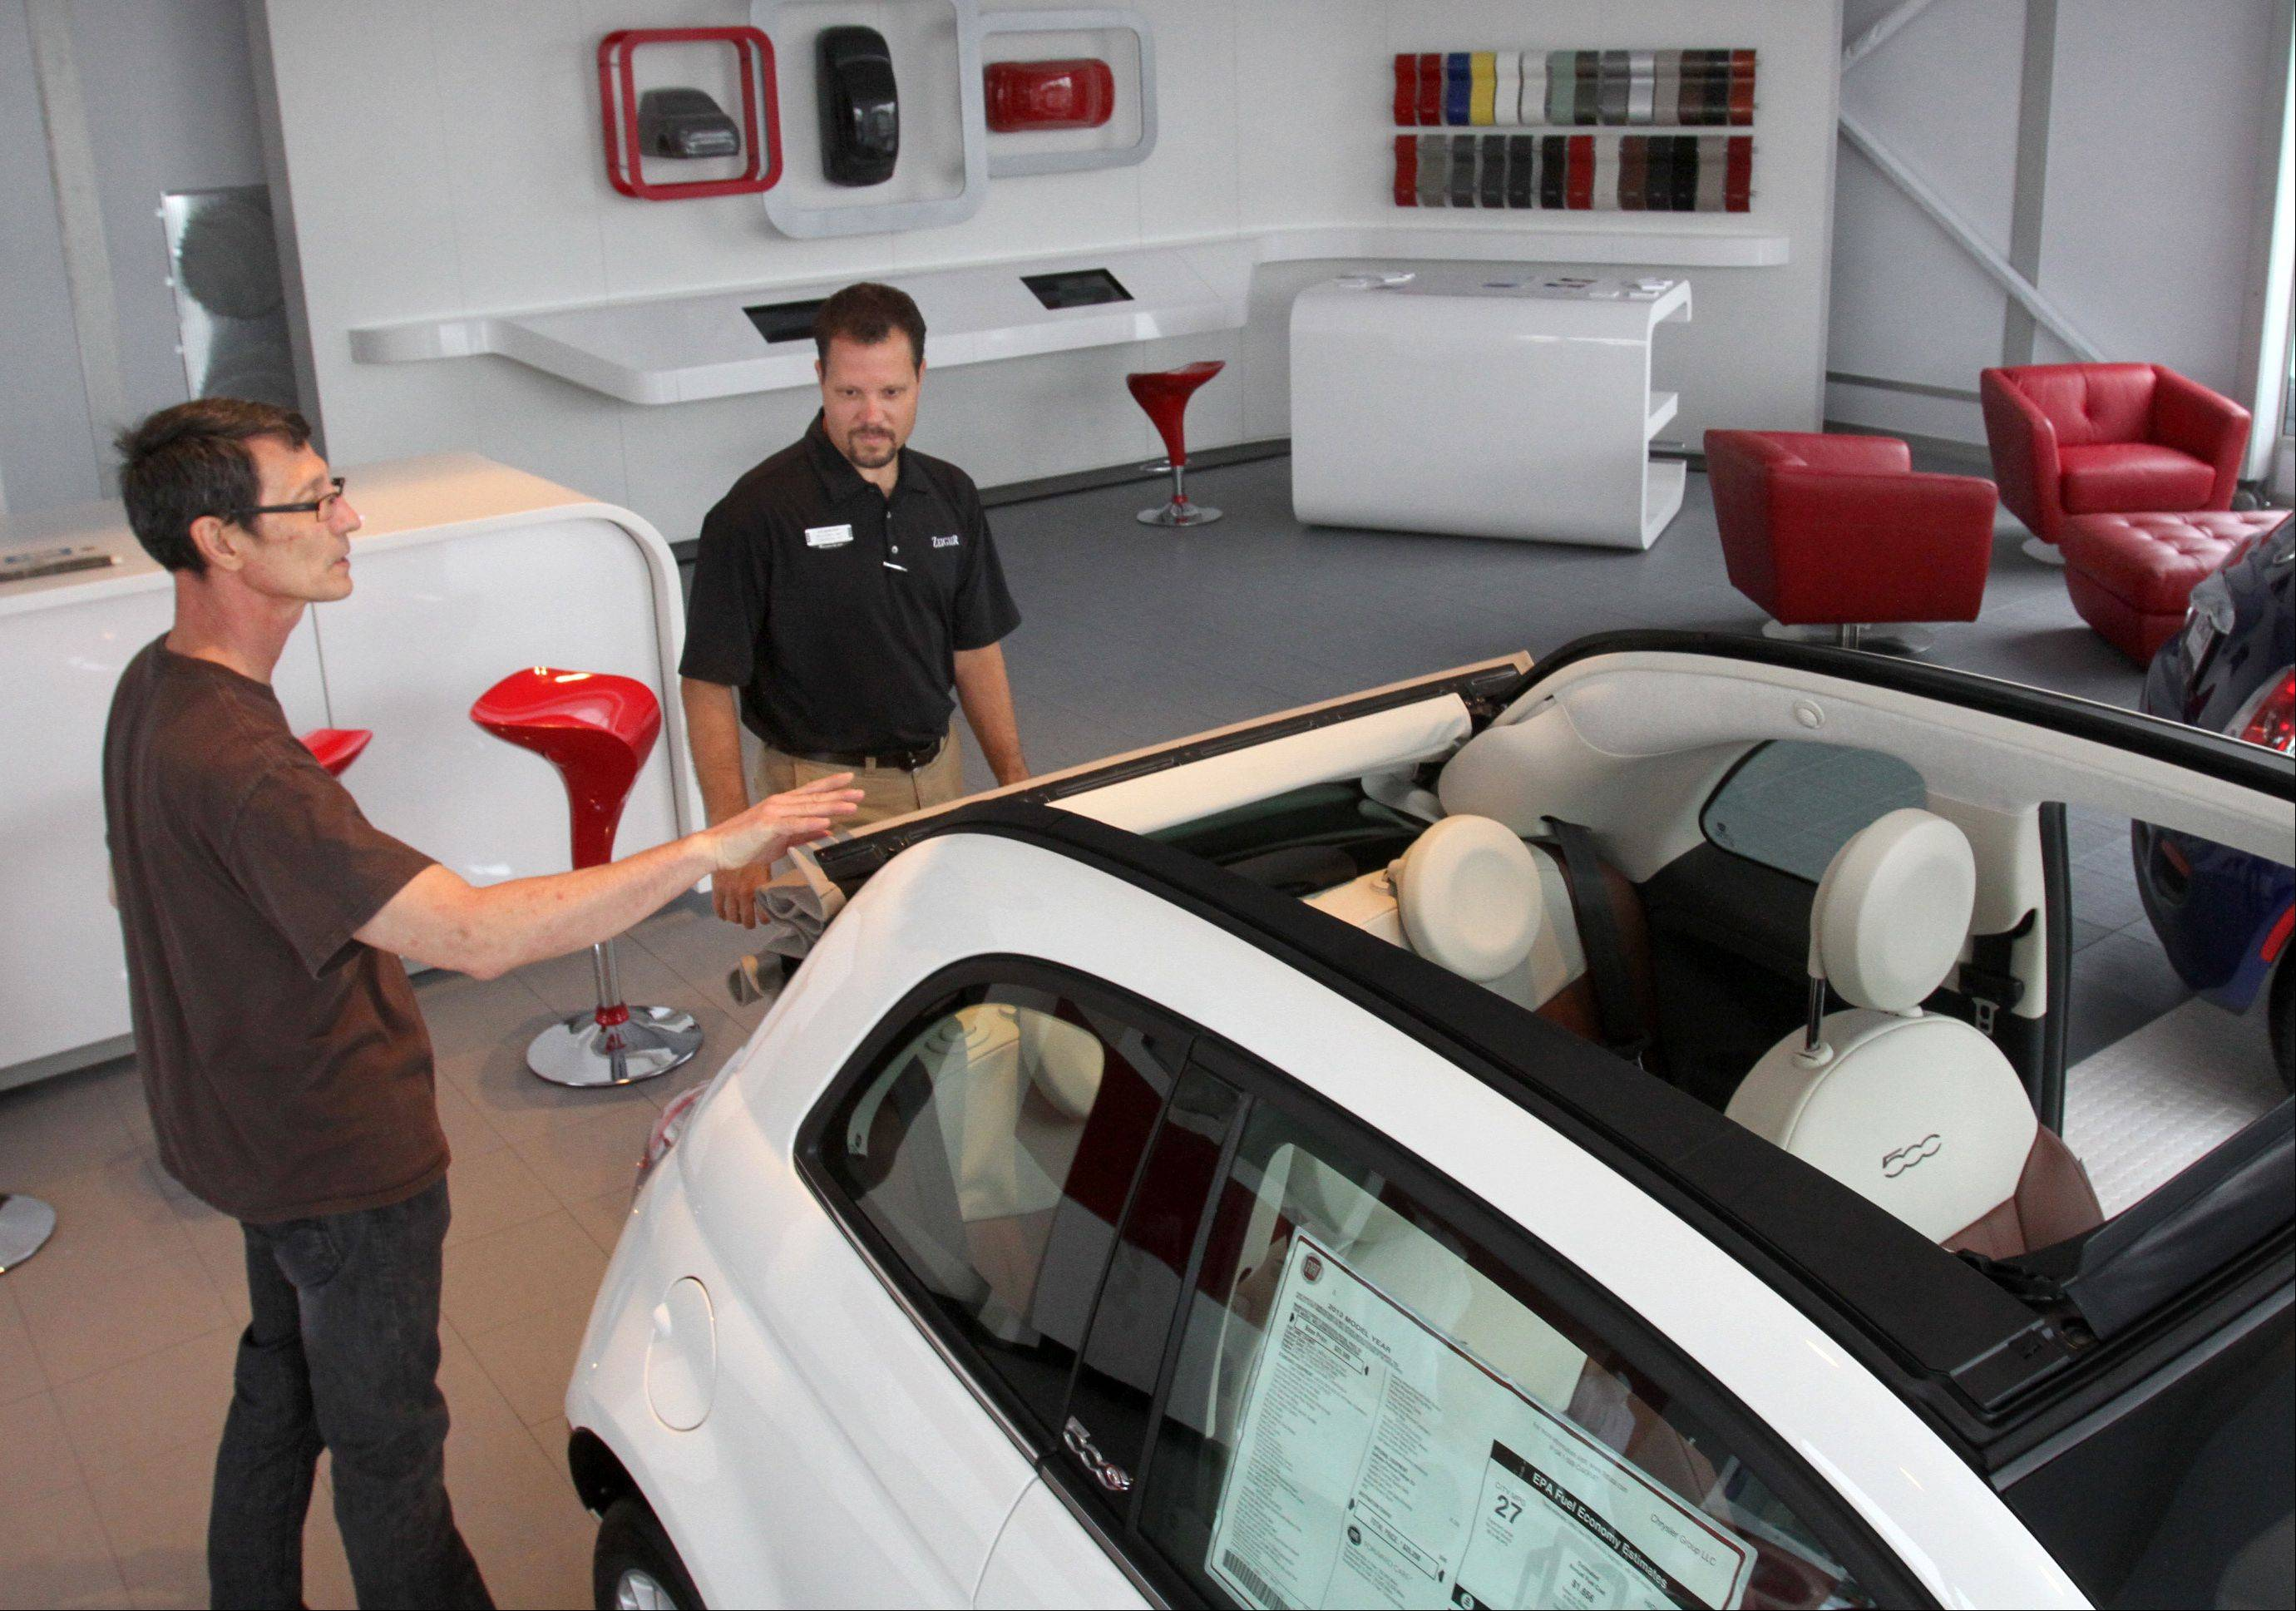 Jeff Nemcher, sales associate at Zeigler Chrysler Dodge Jeep, shows Wesley Hawk of Bartlett the 2012 Fiat 500 Lounge car in the dealership�s showroom in Schaumburg on Wednesday. The dealership was chosen to help reintroduce the Fiat brand to the U.S. market.